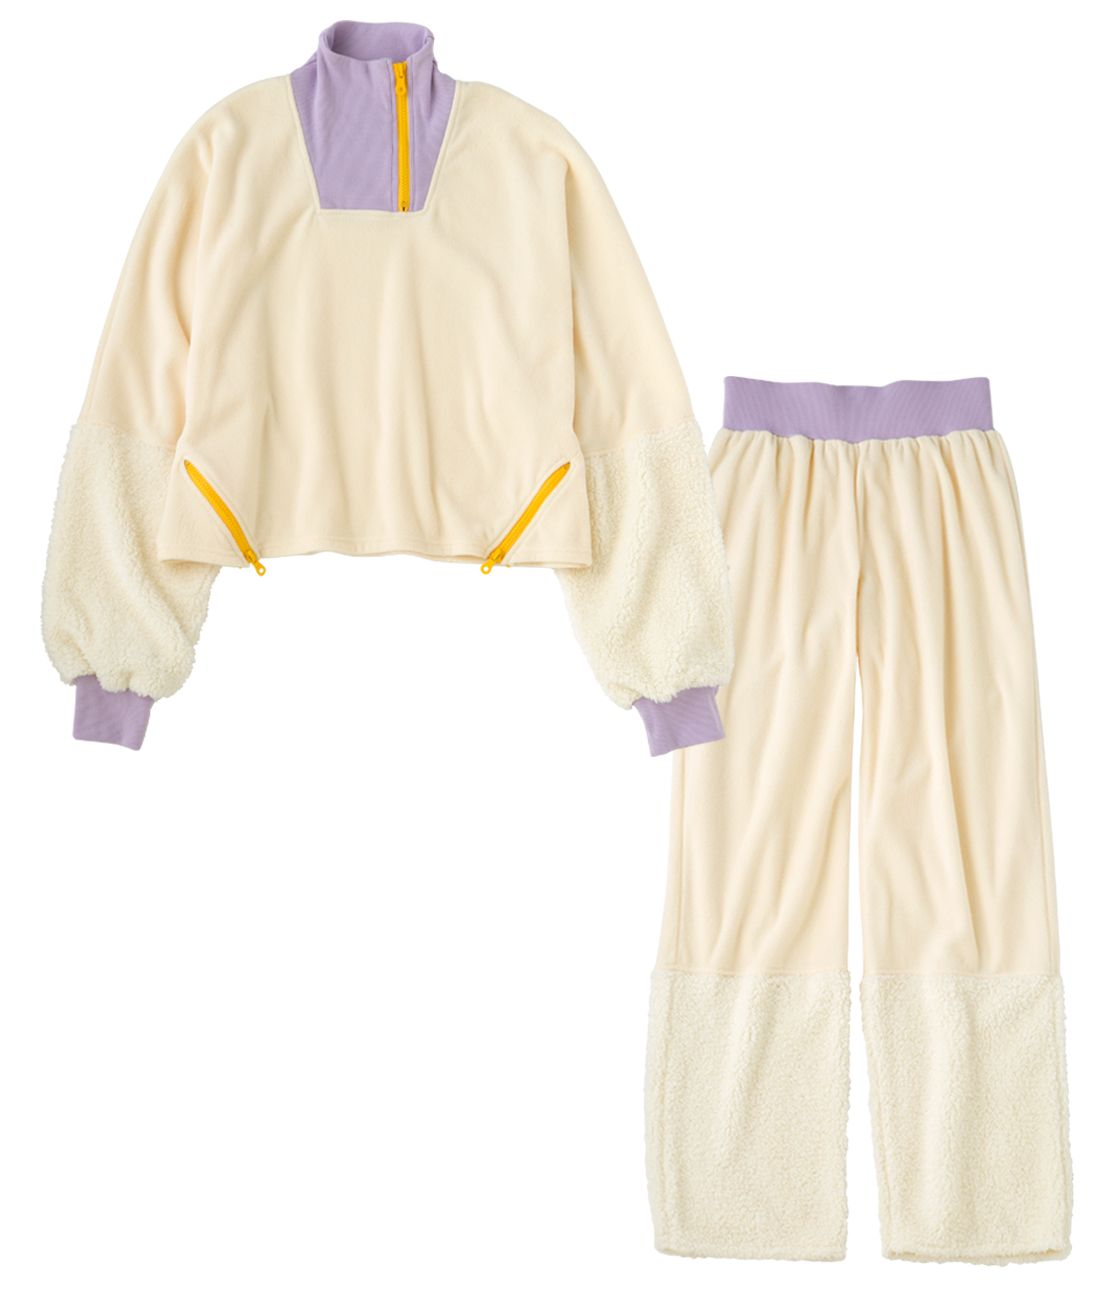 YM-by-color fleece pajamas